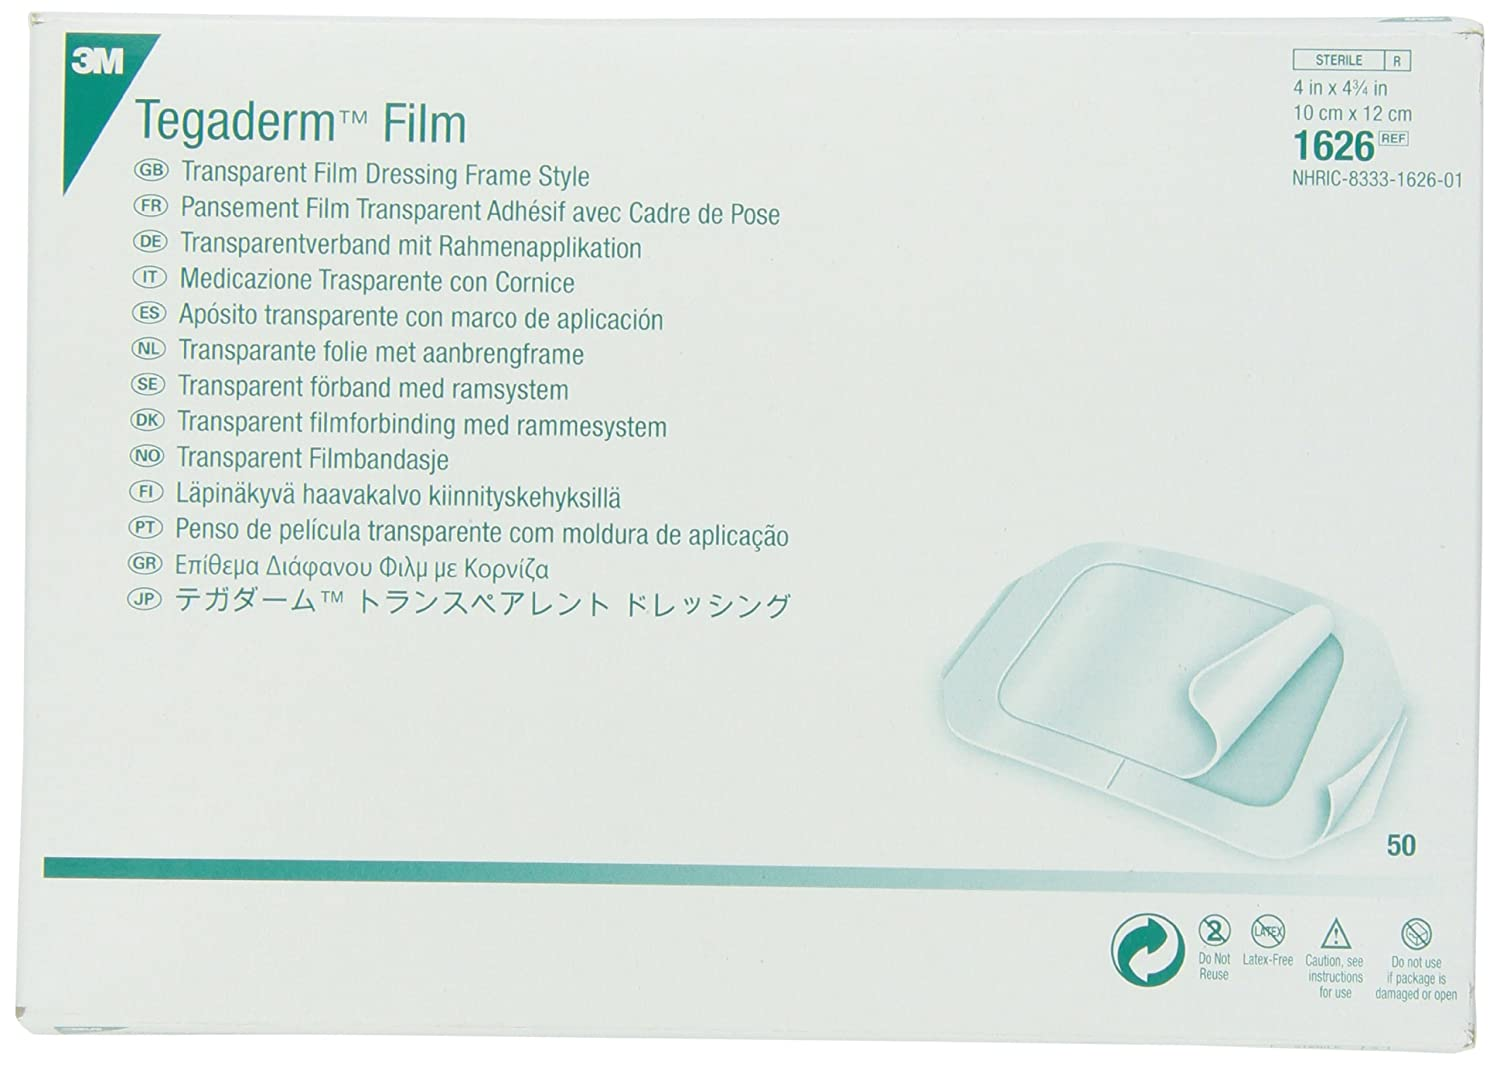 3M Tegaderm Transparent Film Dressing Frame Style 1626 (Pack of 50)